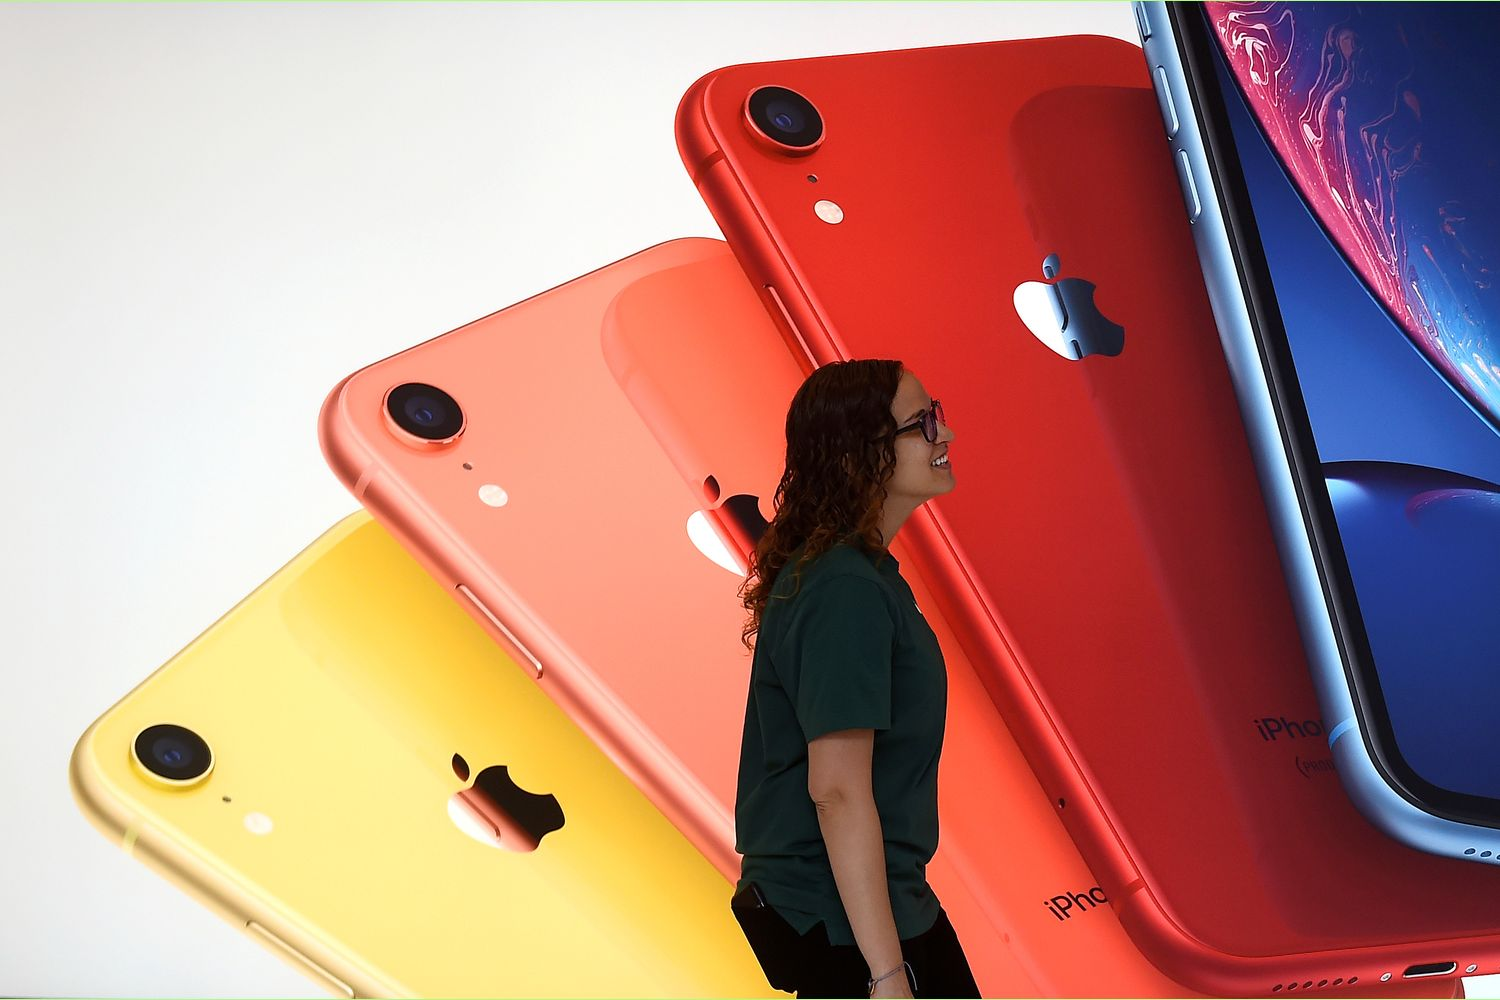 An Apple Store employee walks past an illustration of iPhones at the new Apple Carnegie Library during the grand opening and media preview in Washington in May last year. (Reuters photo)